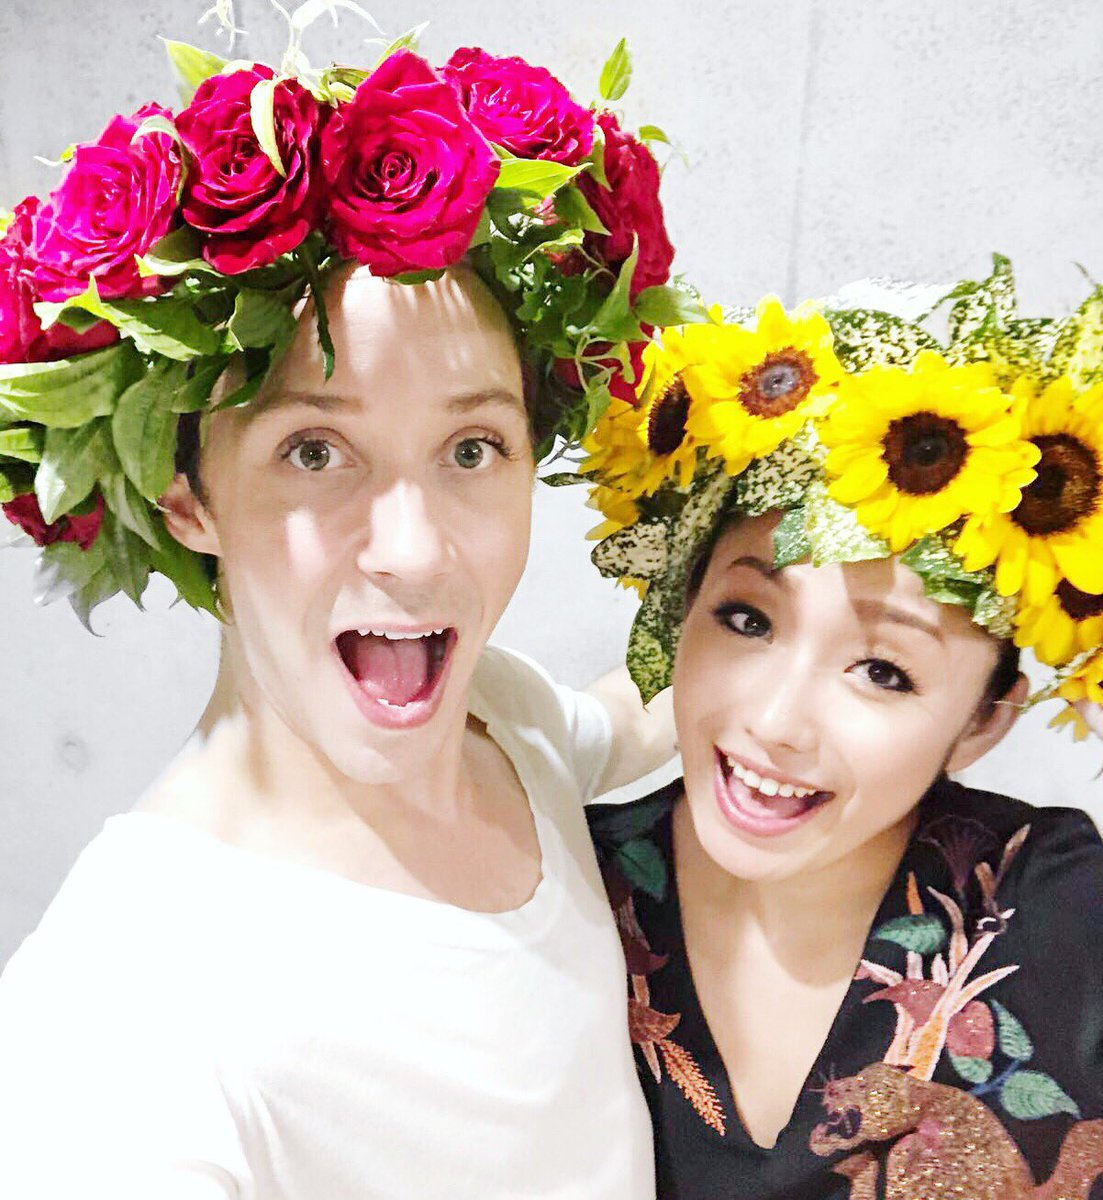 Thank you Machiko-san for our gorgeous flower crowns! @M1K1_ANDO | #fantasyonice2018 #figureskating #queens